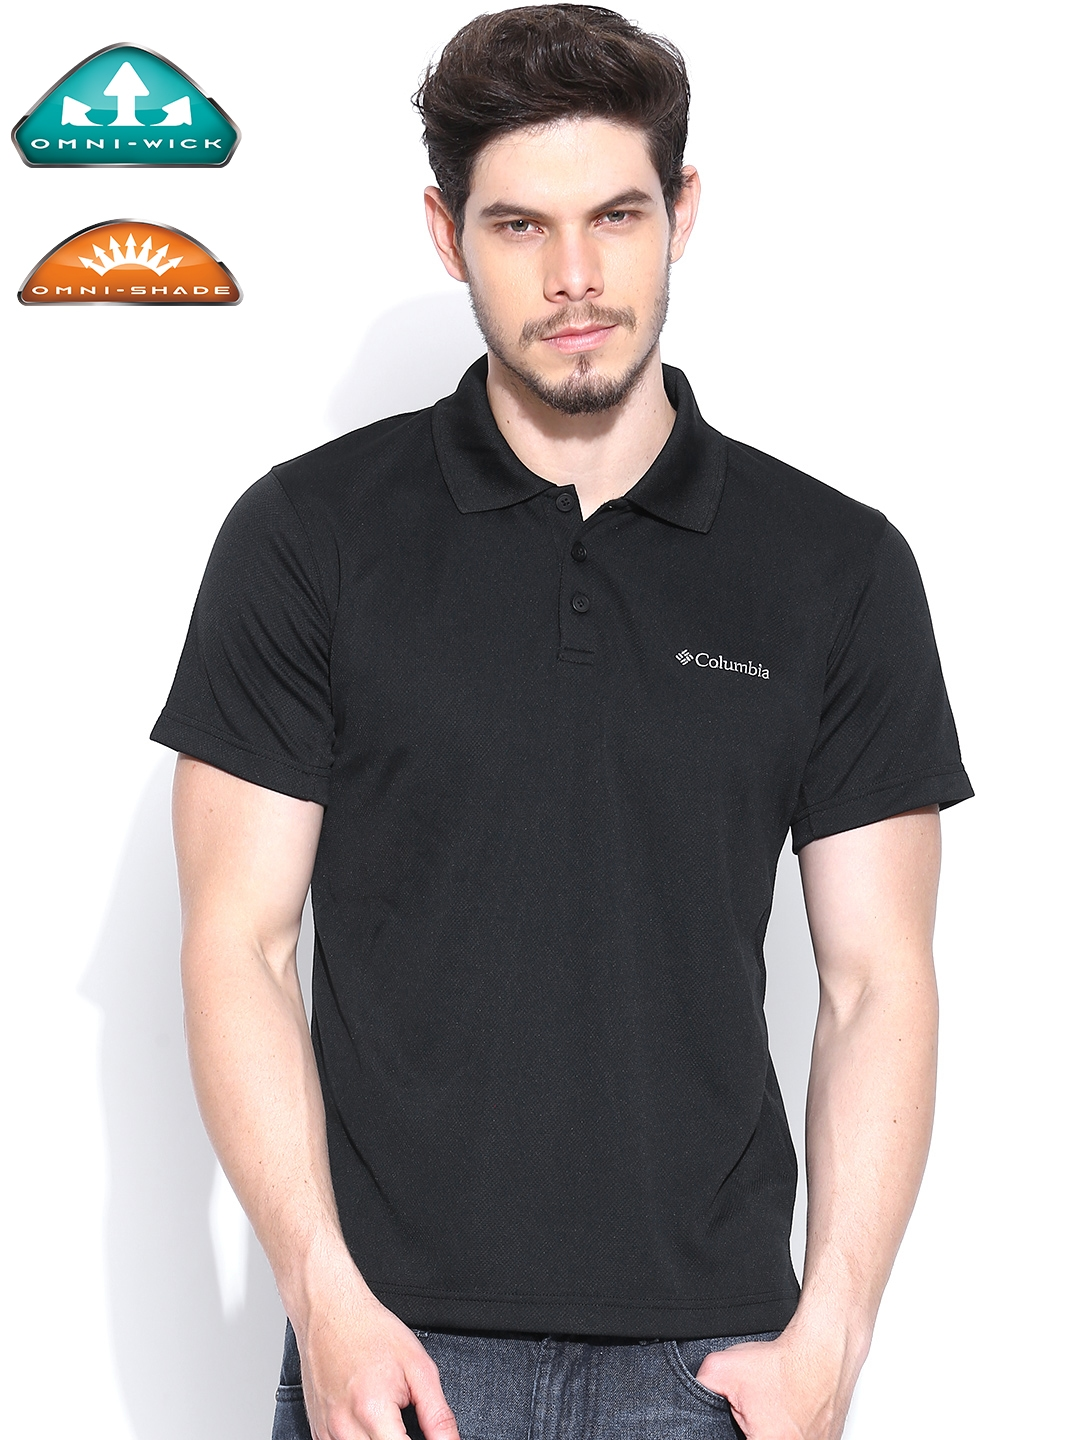 6f0835f7611 Buy Columbia Men Black New Utilizer UV Protect Outdoor Casual Polo T ...